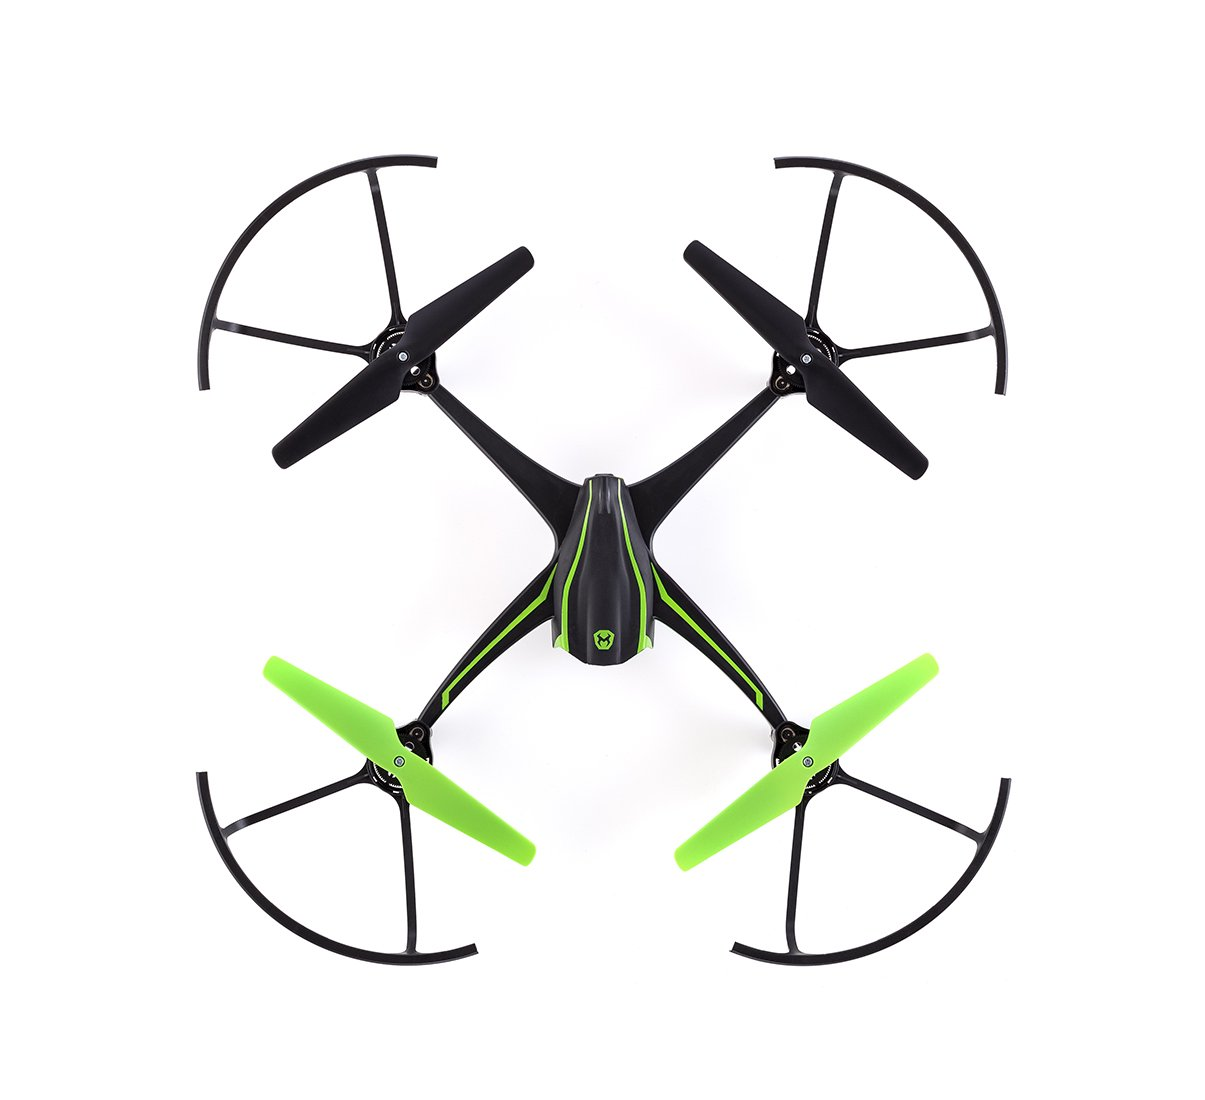 Sky Viper v2450HD Streaming Drone with Flight Assist & 2X Improved Flight Range - 2017 Edition by Sky Viper (Image #4)